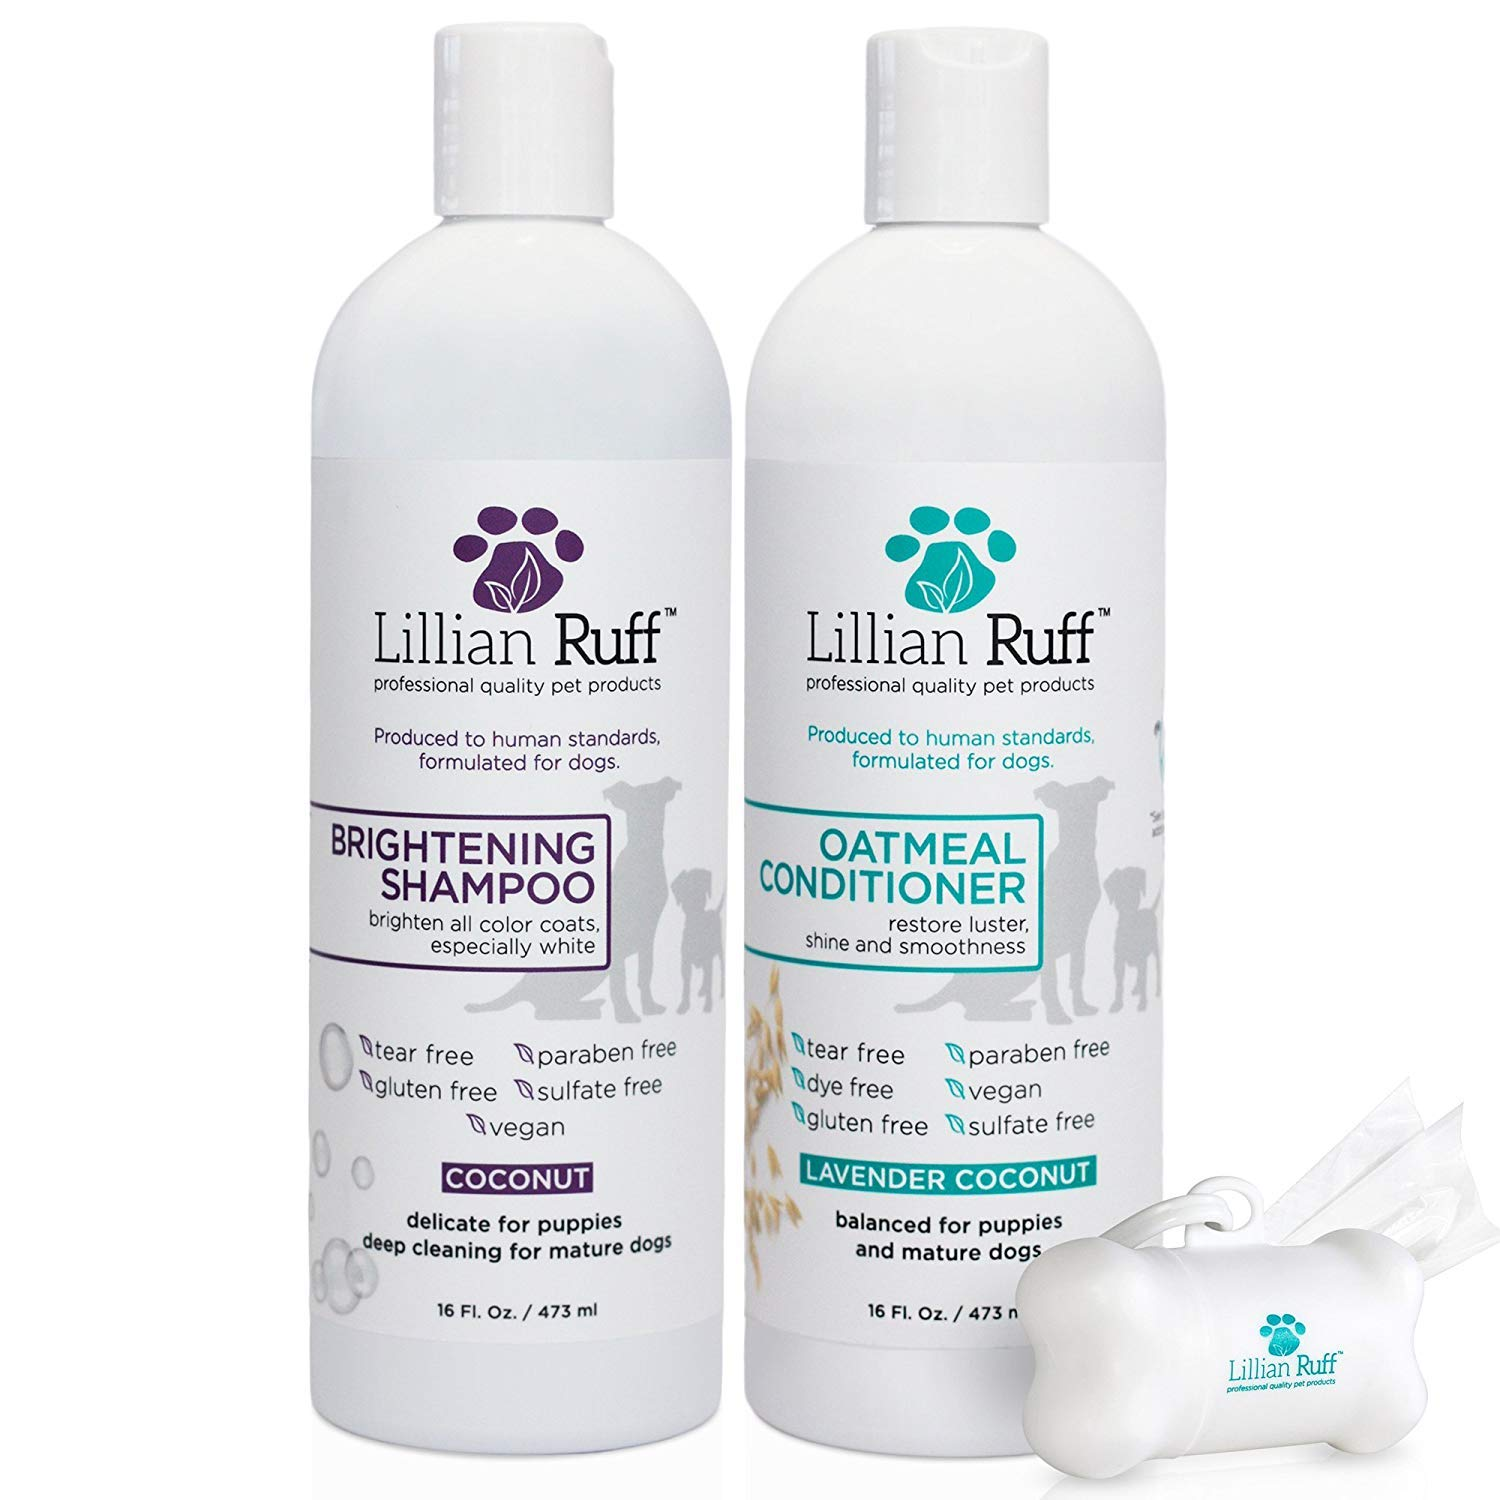 Lillian Ruff Dog Shampoo Conditioner Set - Safe for Cats - Coconut Brightening Shampoo & Soothing Lavender Coconut Oatmeal Conditioner - Tear Free with Aloe for Normal, Dry & Sensitive Skin (16 oz.)